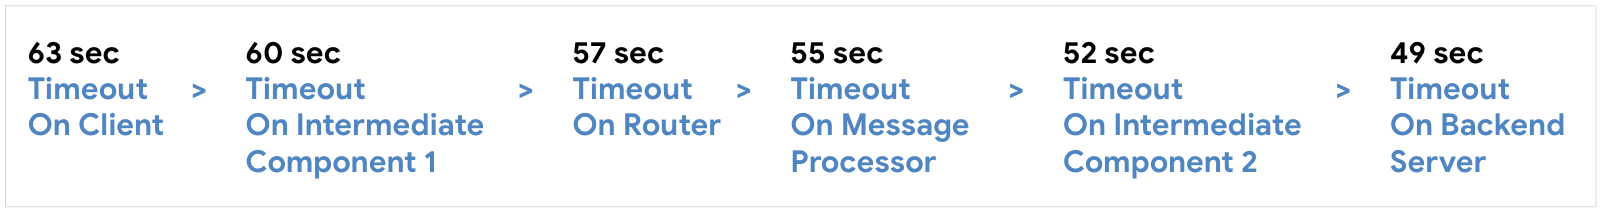 Configure timeout on client at 63 seconds, then Intermediate Component 1 at 60 seconds, then Router at 57 seconds, then Message Processor st 55 seconds, then Intermediate Component 2 at 52 seconds, then Backend Server at 59 seconds